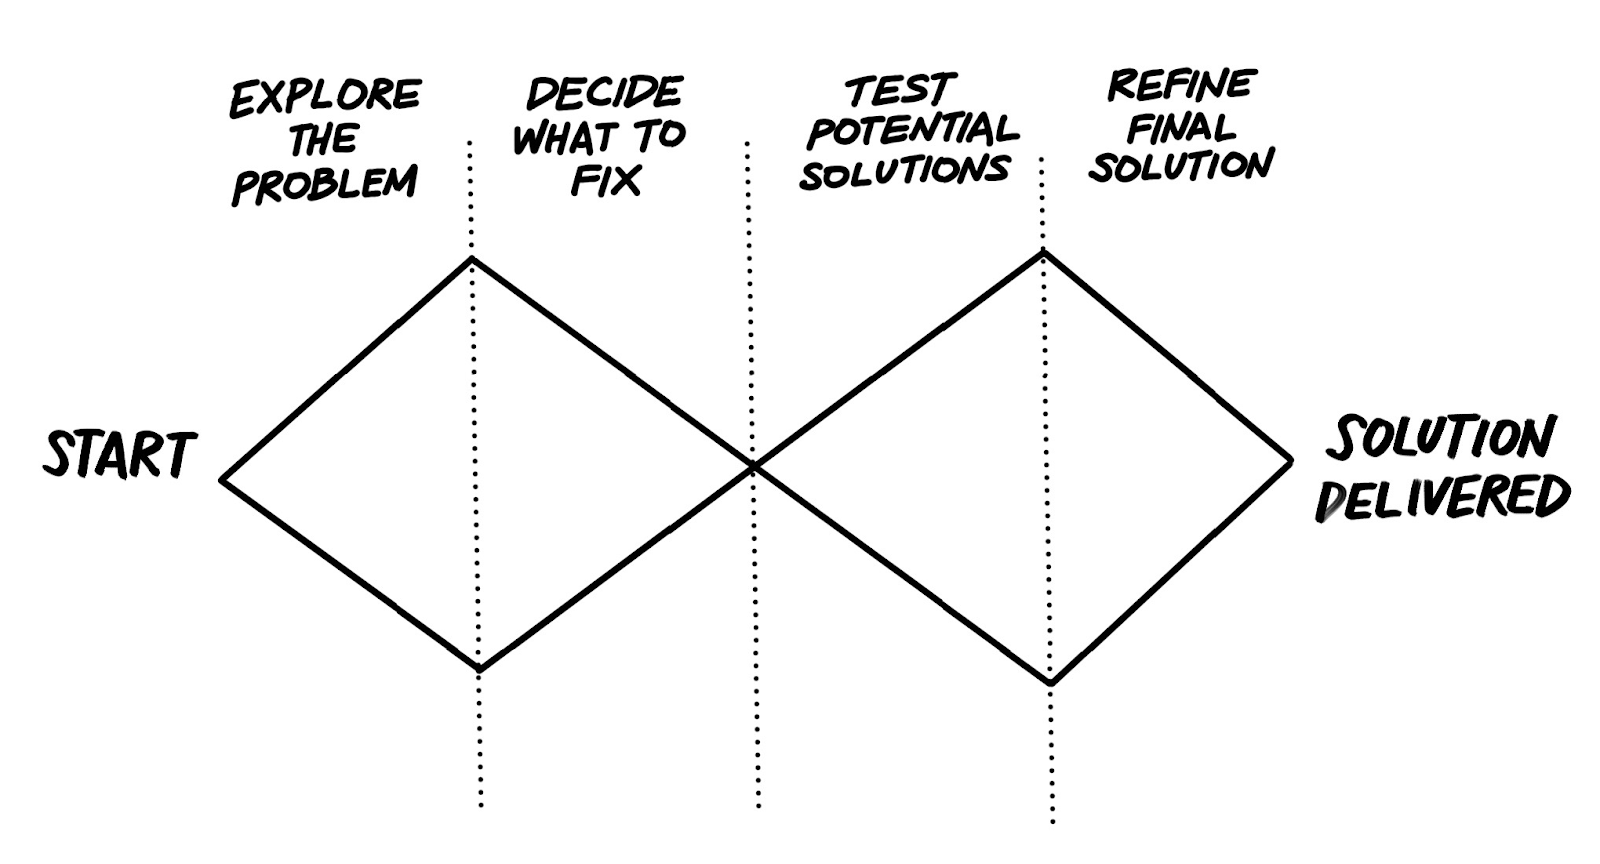 The design double diamond — showing a process from exploring a problem, deciding what to fix, and refining a solution